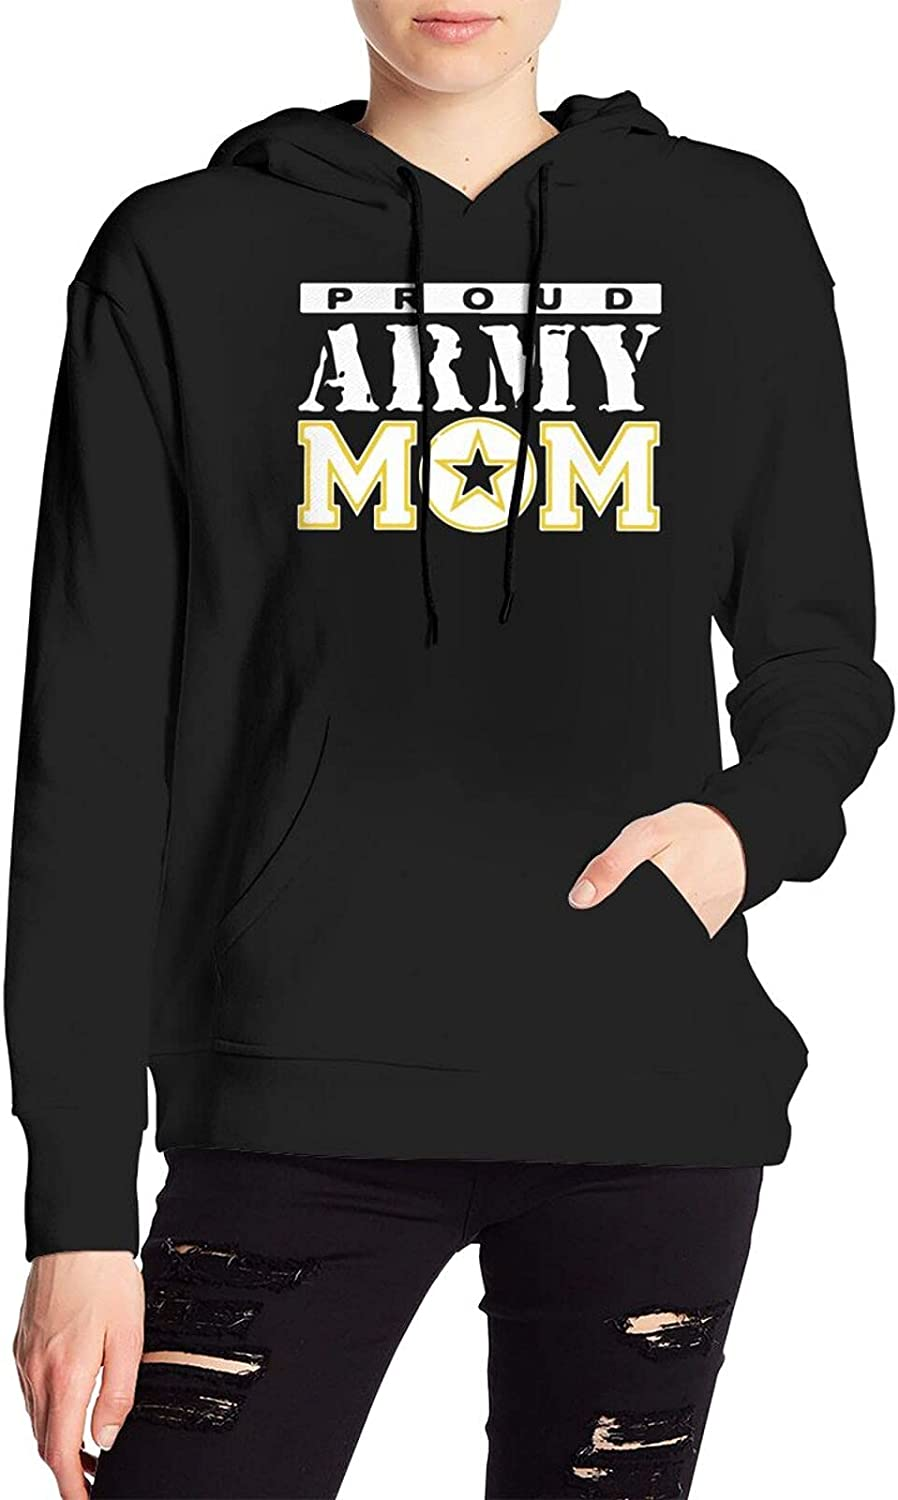 Proud Army Mom Sweater Fashion Hooded Sweatshirt With Pocket For Men'S Women